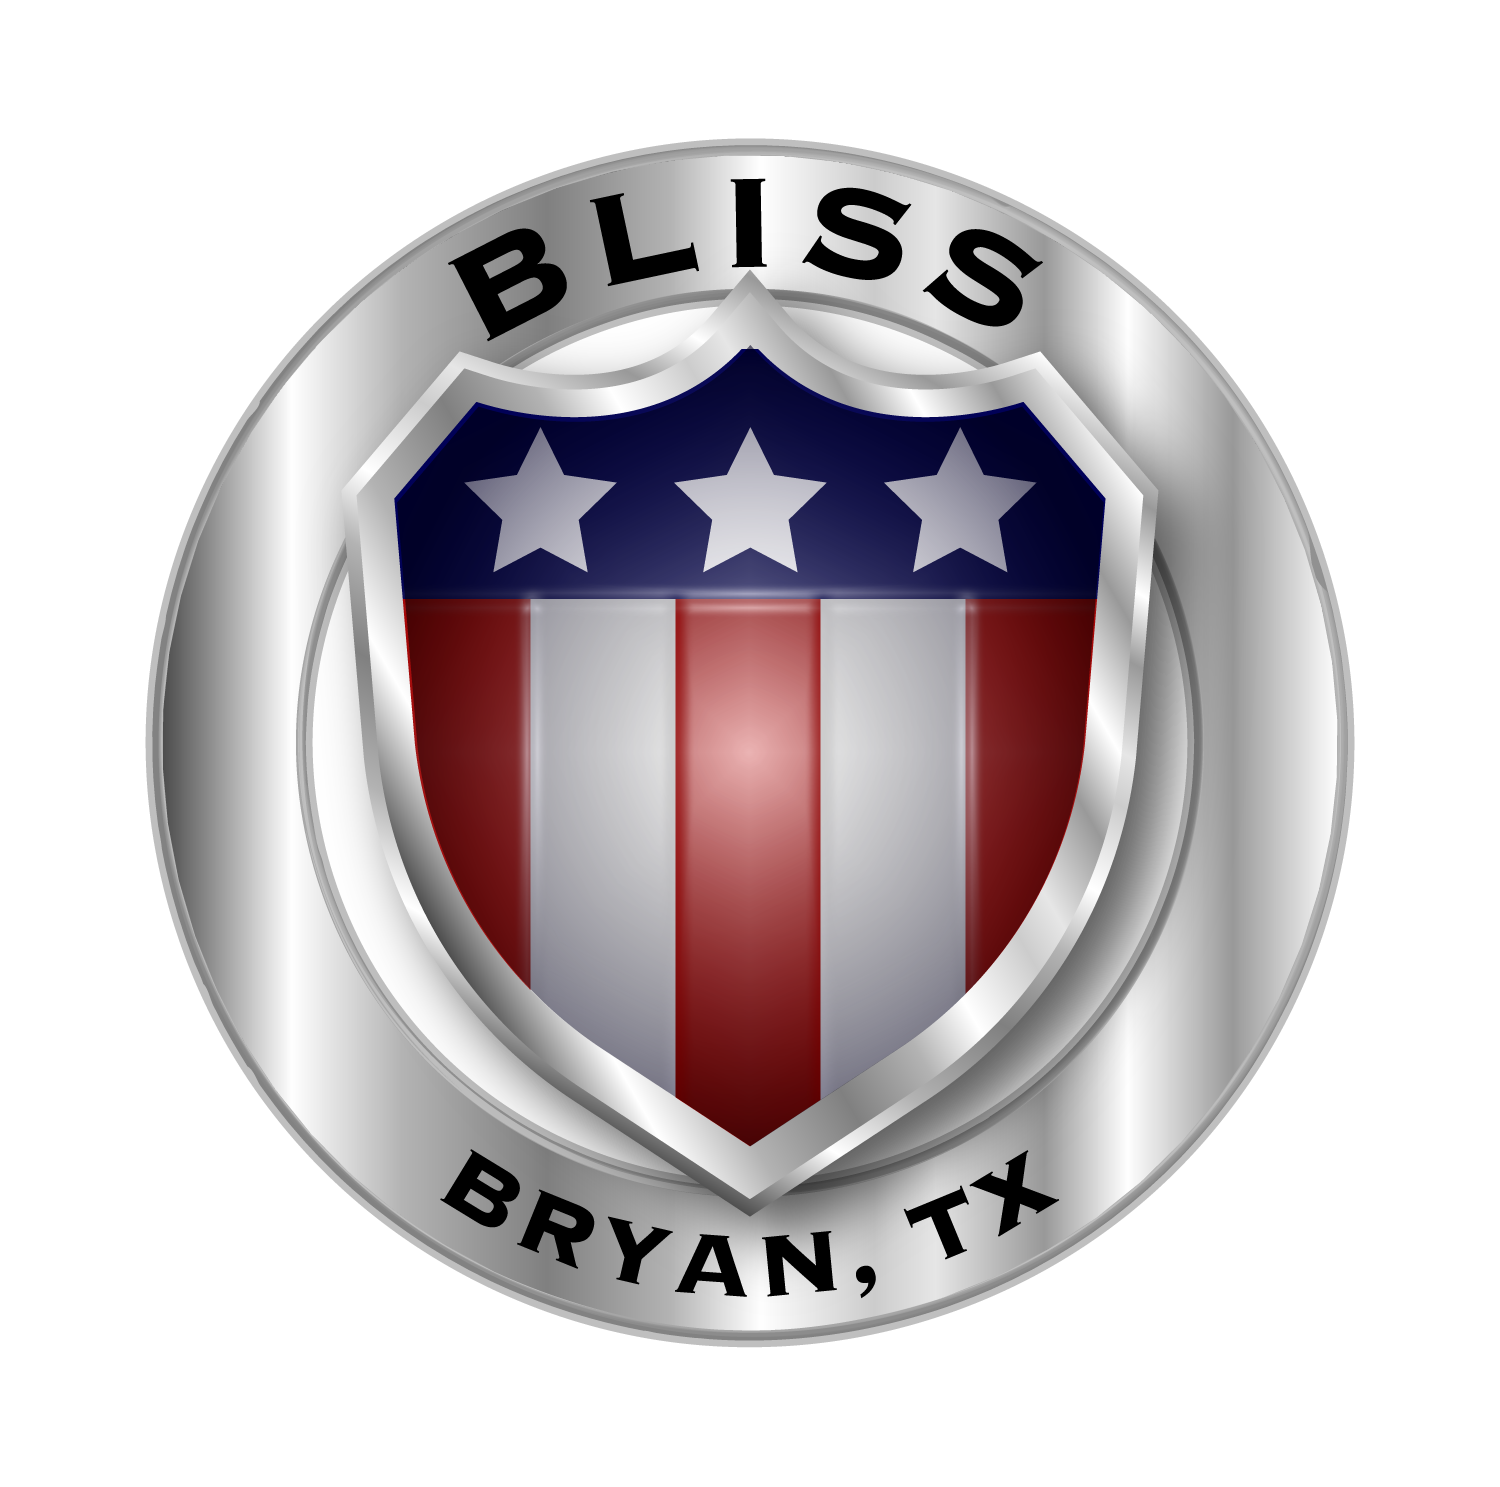 bliss-logo.png